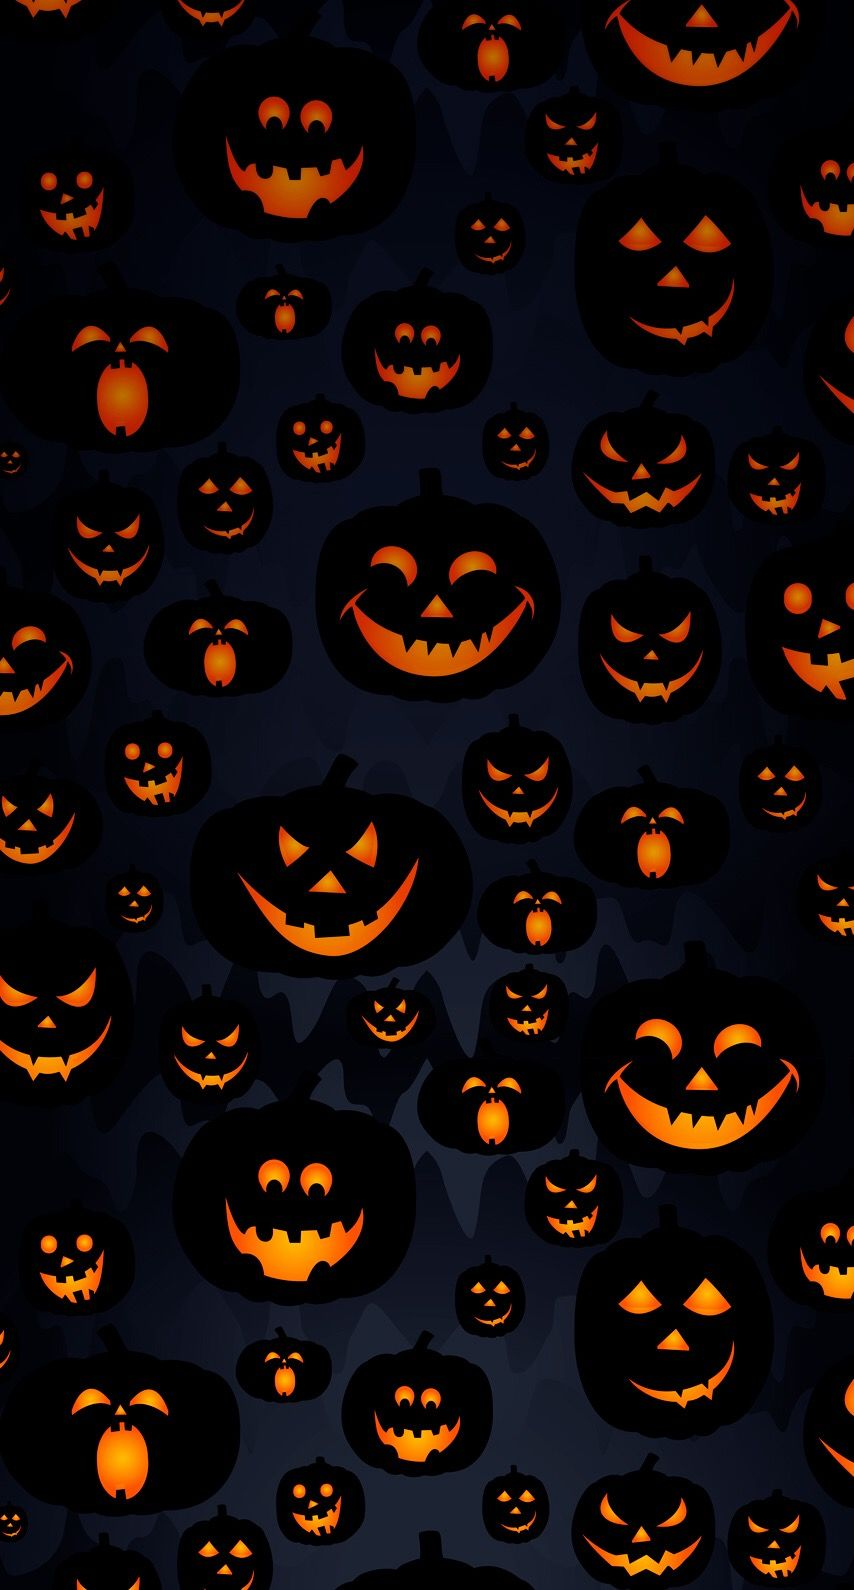 HD Halloween Background Images from Tumblr for iPhone 854x1590